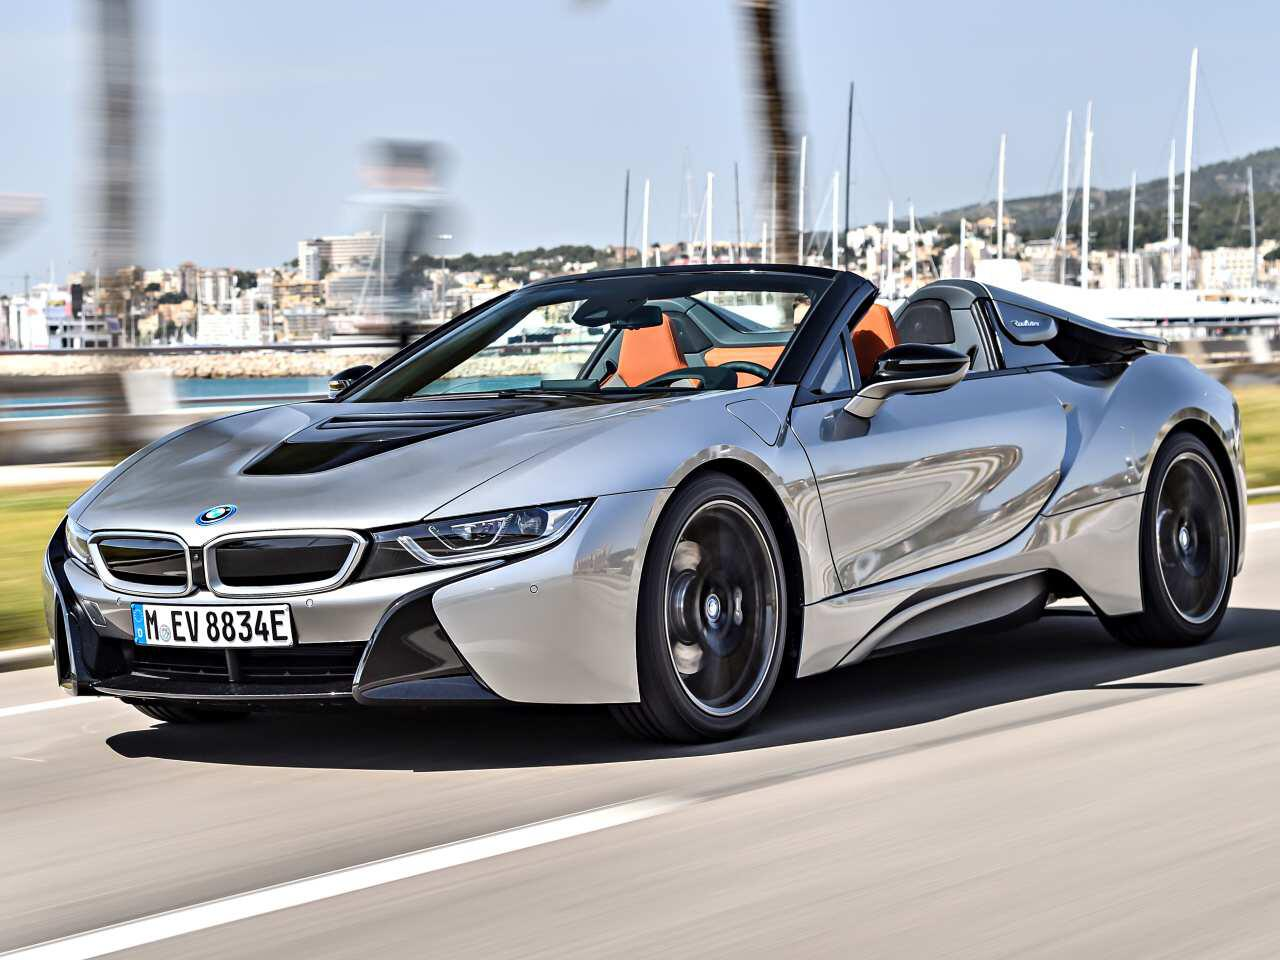 bmw i8 roadster so schick ist die oben ohne variante des hybrid sportlers web de. Black Bedroom Furniture Sets. Home Design Ideas